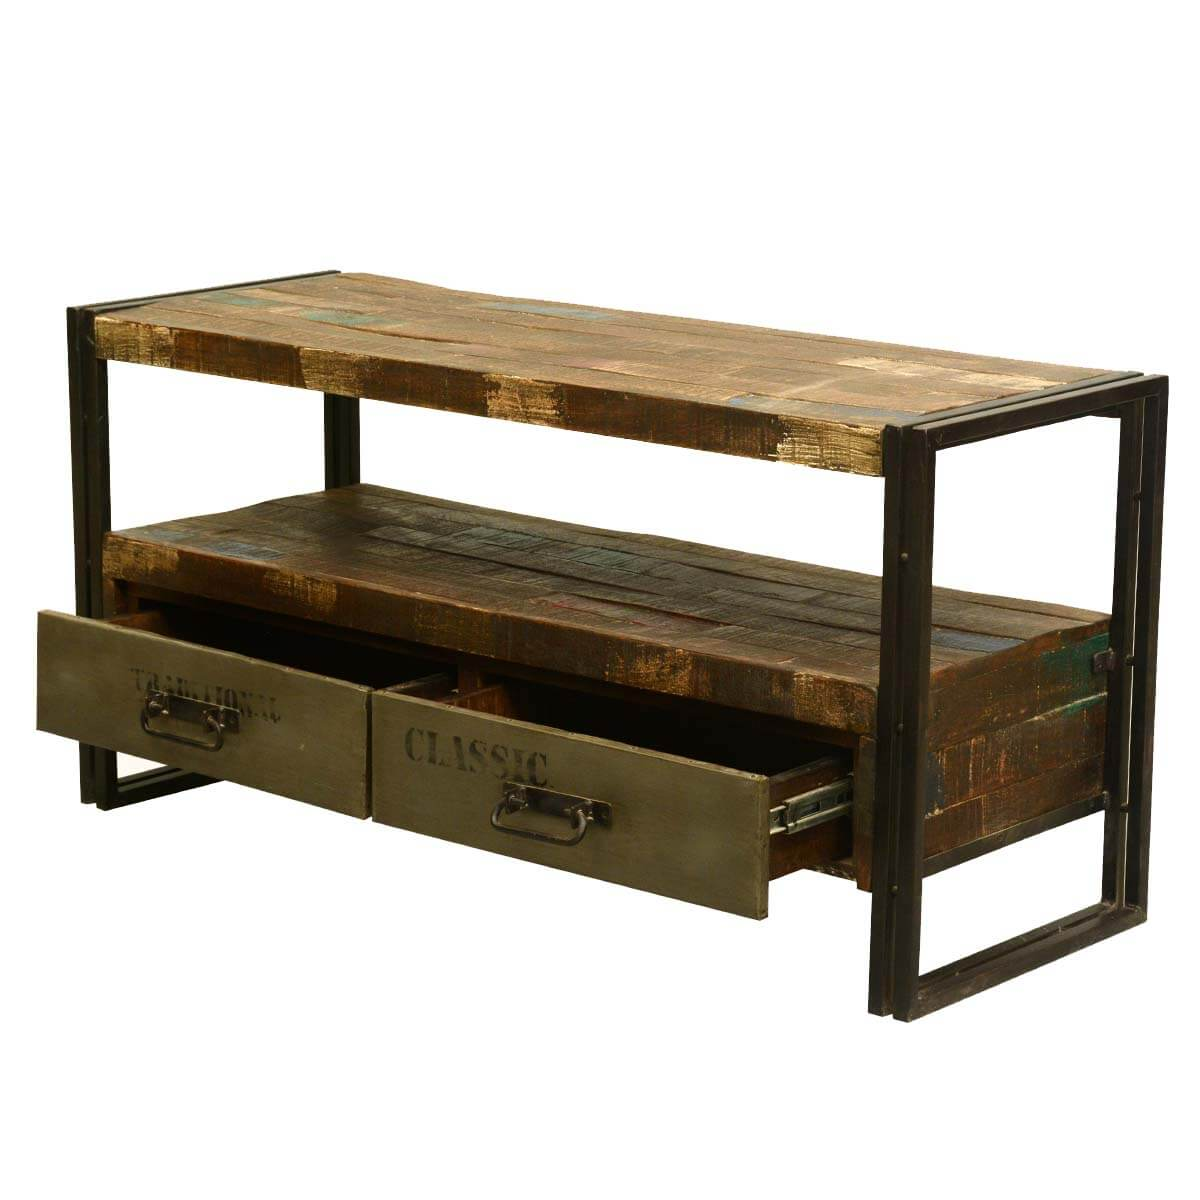 Stylish Rustic Media Console : ... Room Rustic Modern Industrial Reclaimed Wood & Iron Media Console